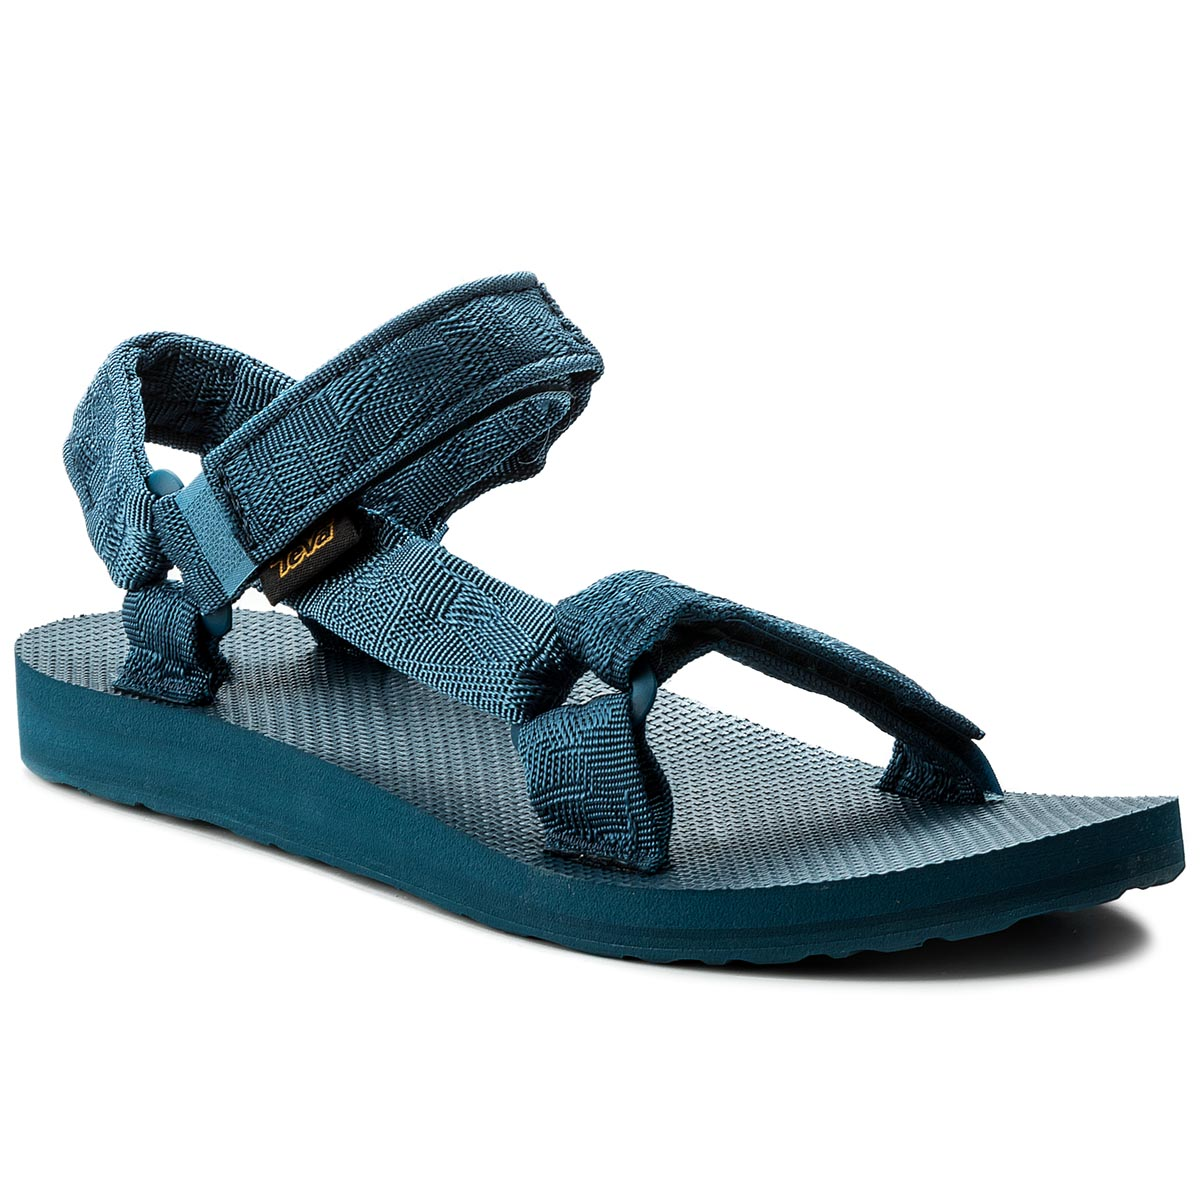 68764532ef2a Sandals TEVA Original Universal 1003987 Moxie Textured Legion Blue